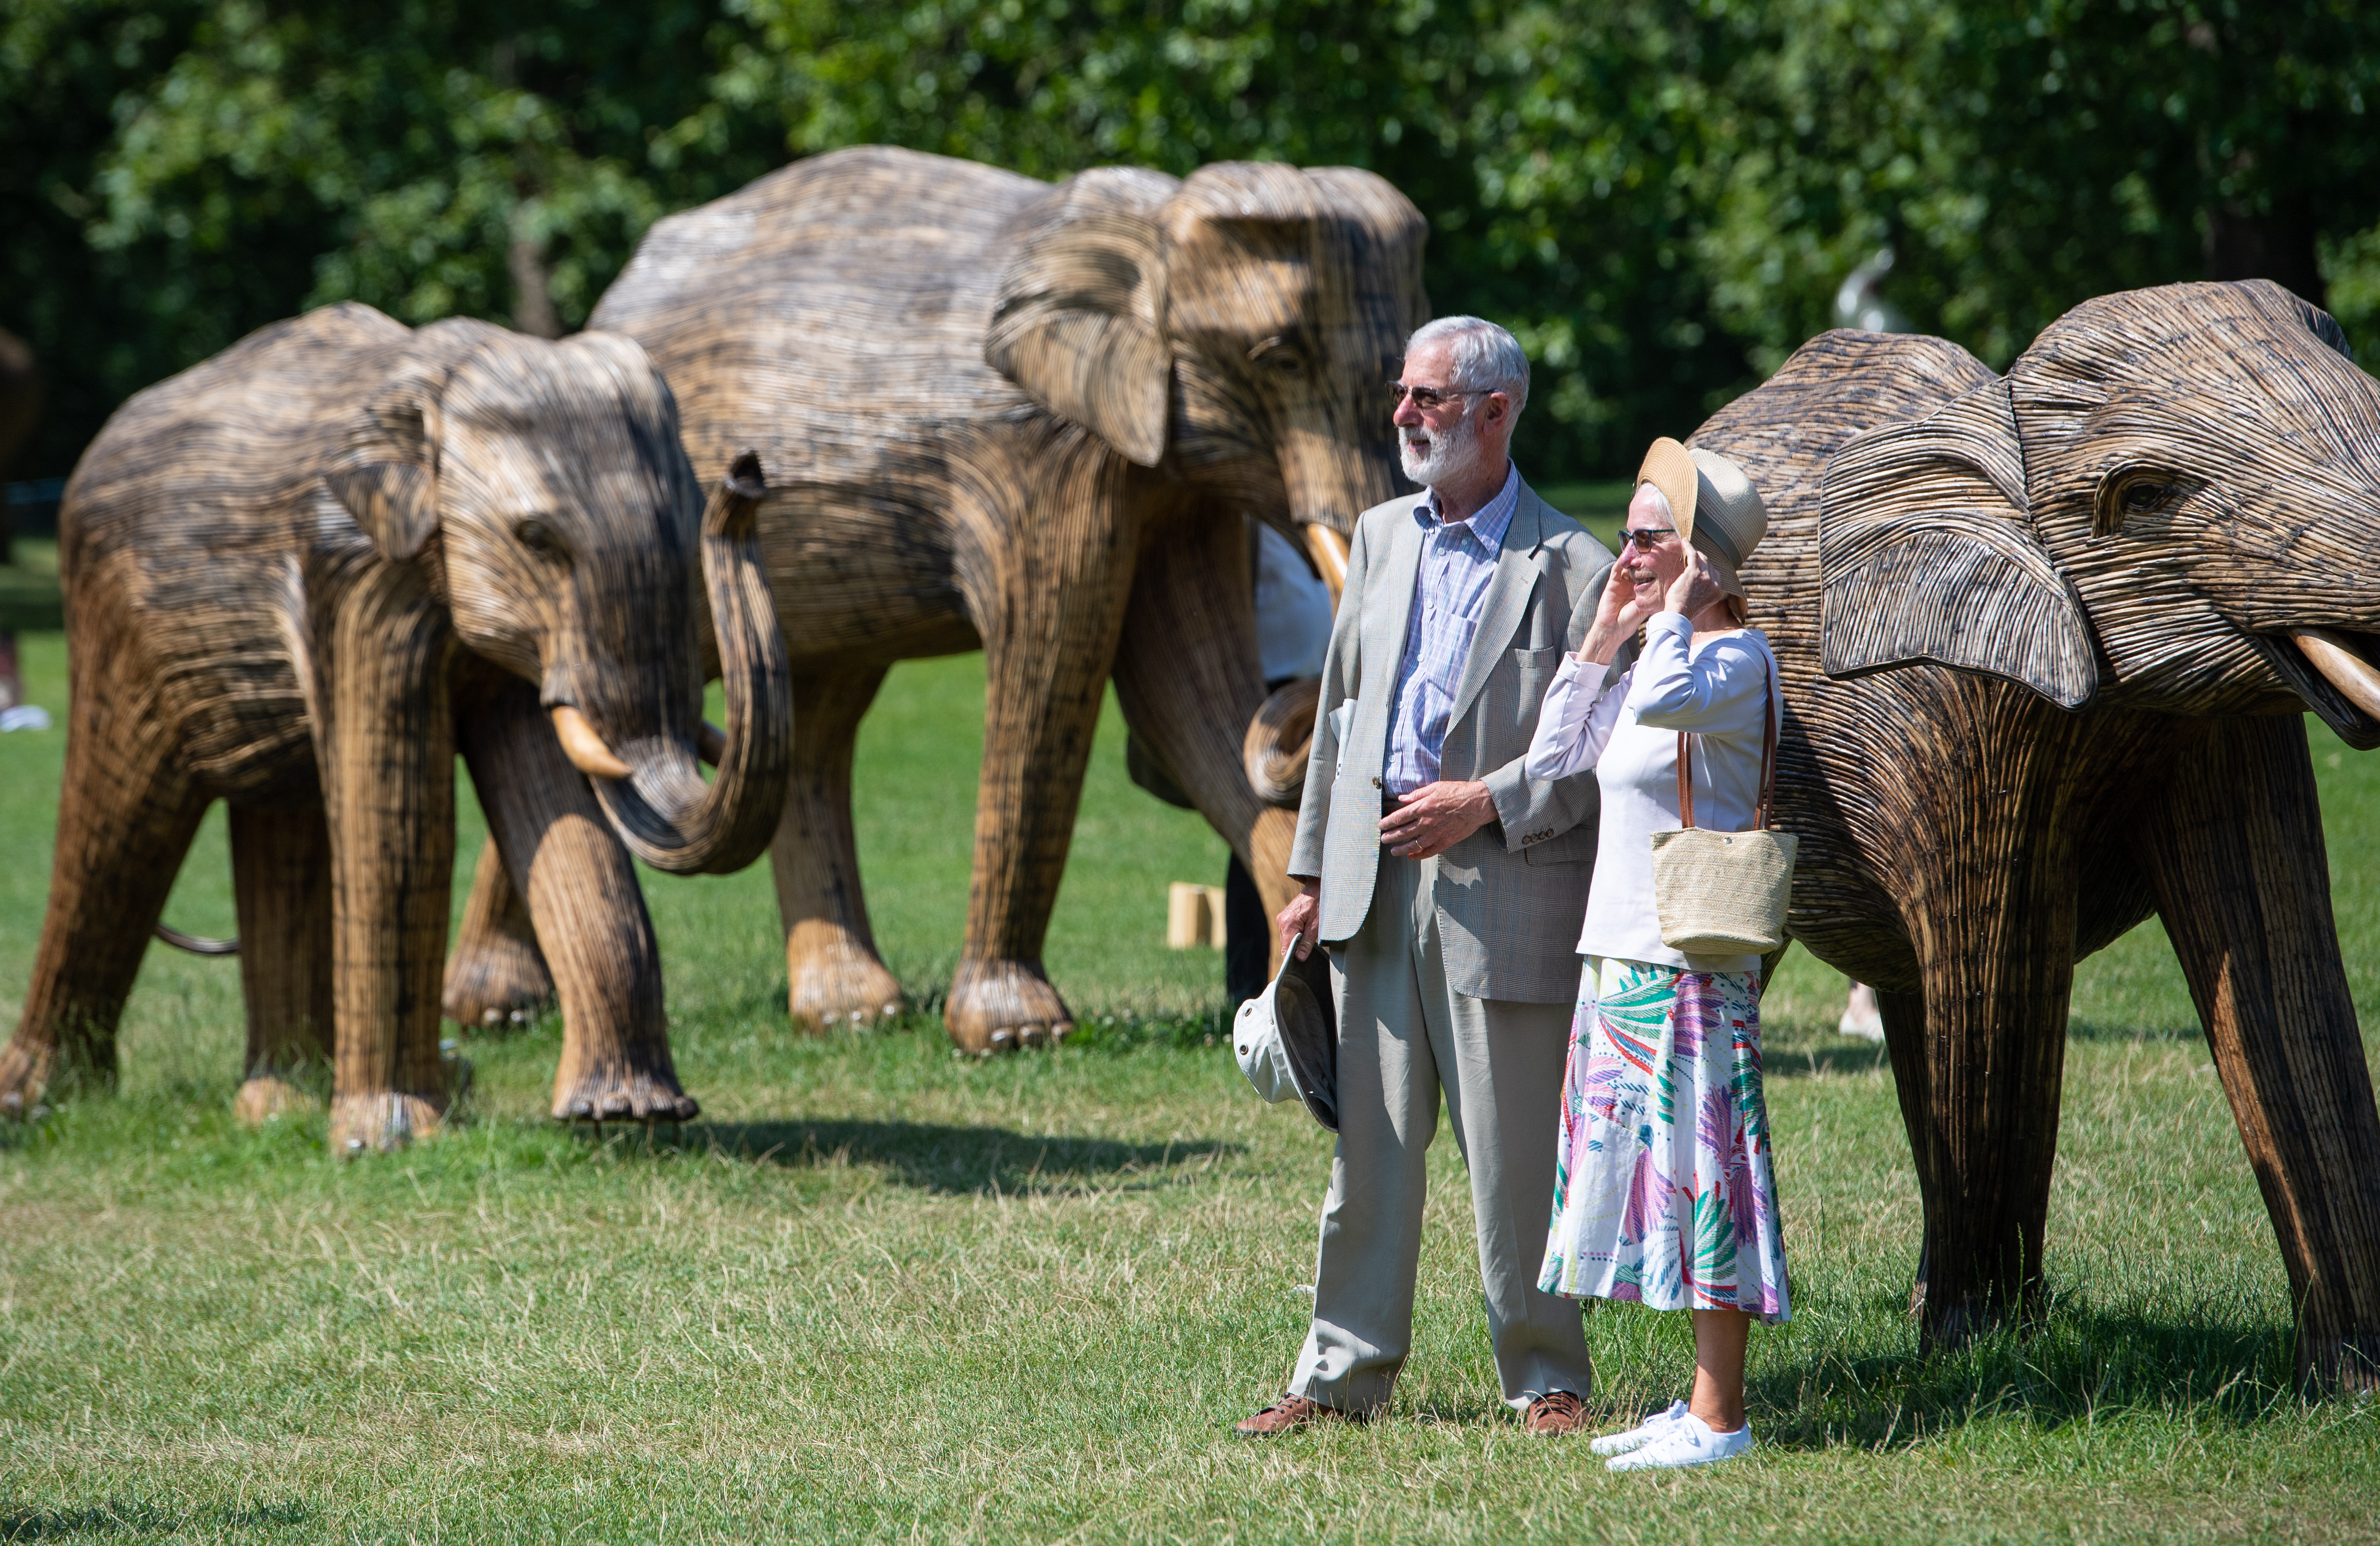 <p>A couple pose for a photo with one of the CoExistence elephant sculptures, as people enjoy the hot weather in Green Park, London. Temperatures are set to soar to sweltering highs this week after the Met Office issued an unprecedented heat warning. Picture date: Tuesday July 20, 2021.</p>